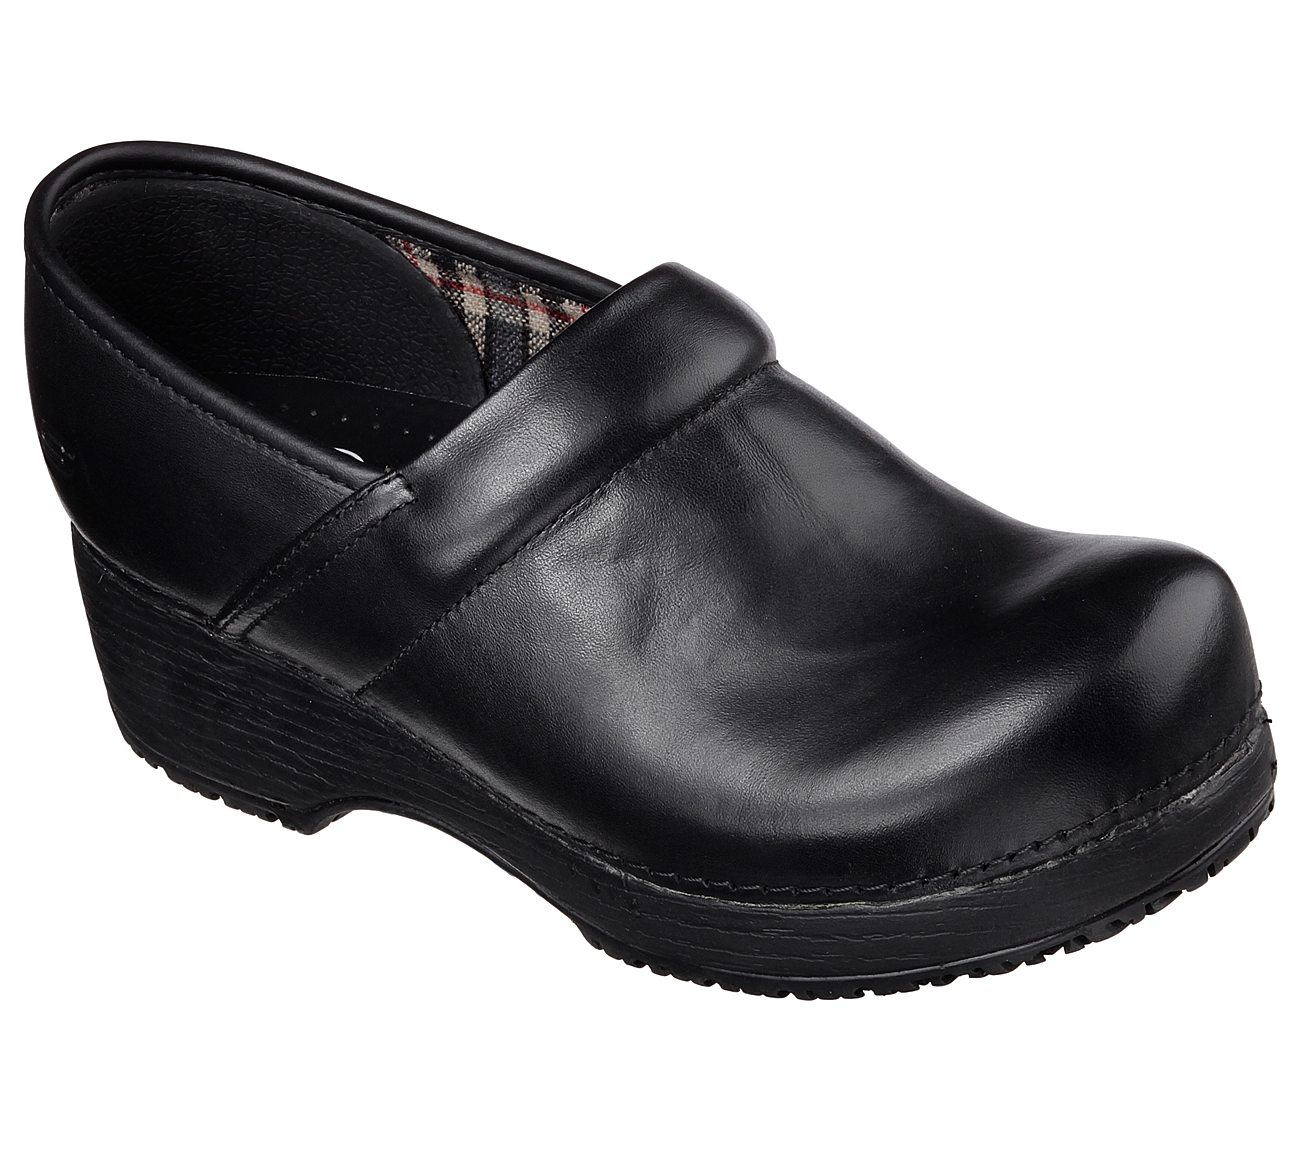 ea0989a66387 Buy SKECHERS Work  Tone-ups Clog Slip Resistant Work Shoes only  85.00